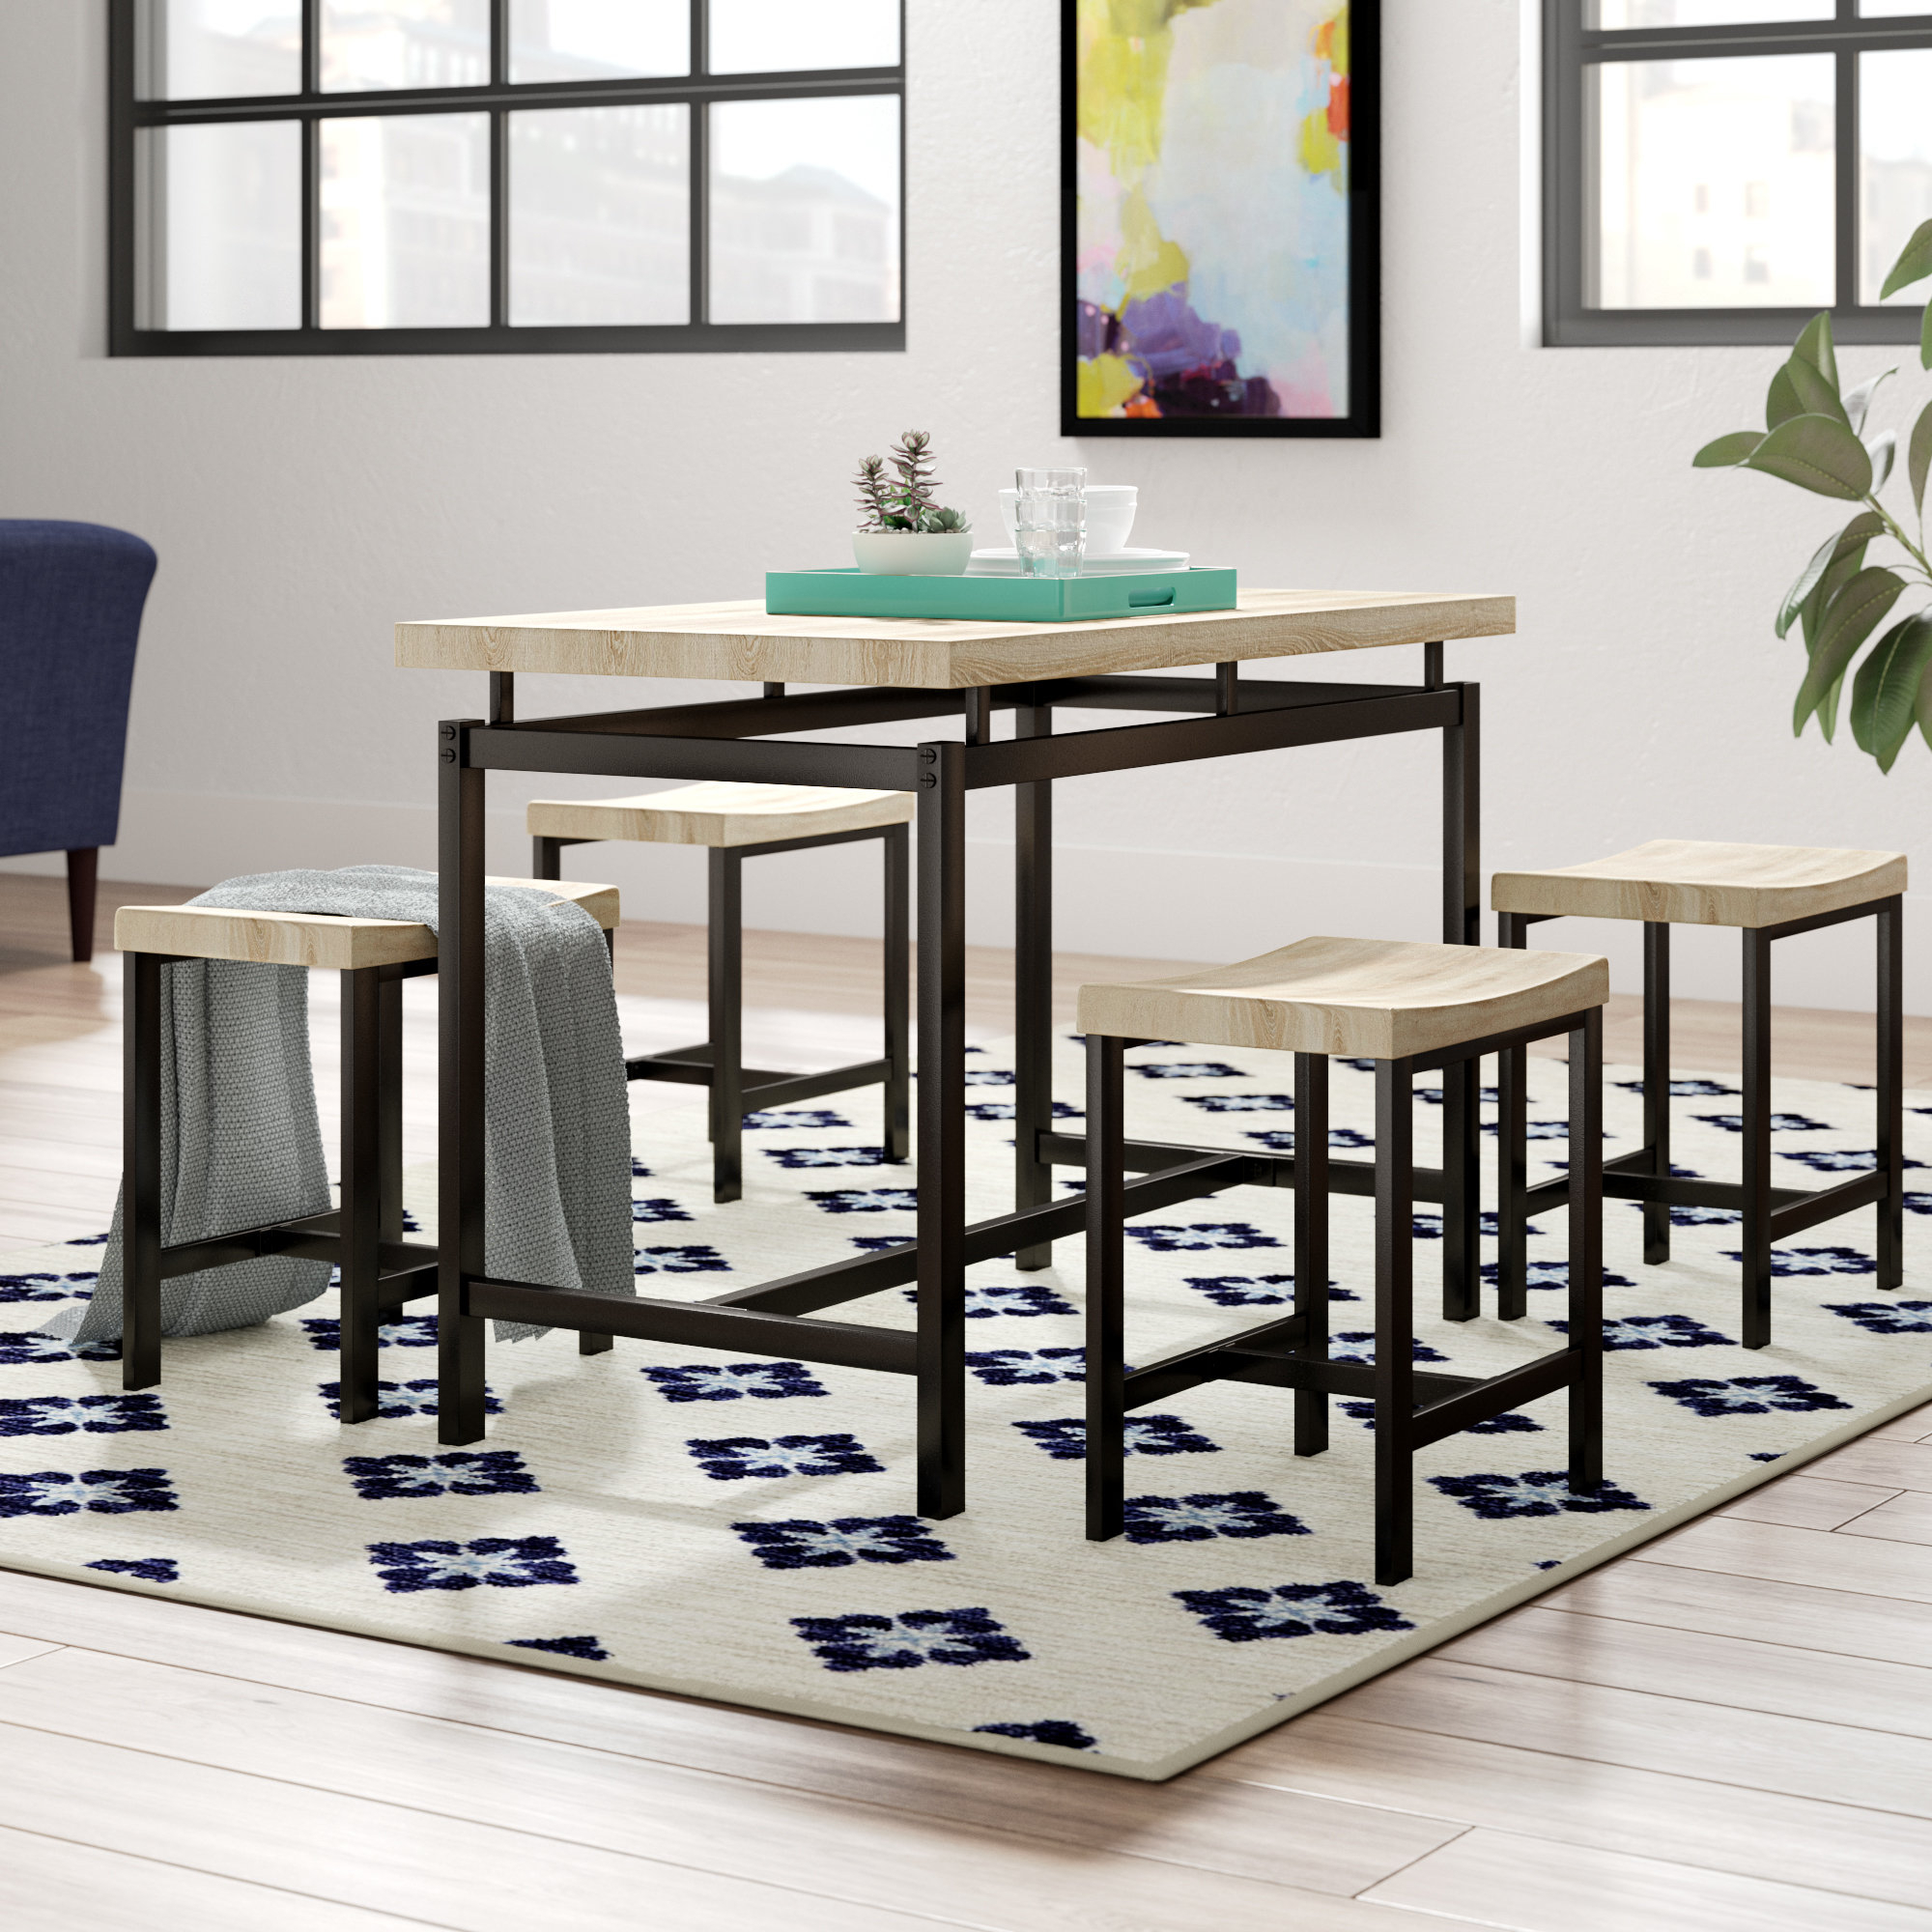 Bryson 5 Piece Dining Set In Current Bryson 5 Piece Dining Sets (Image 5 of 20)